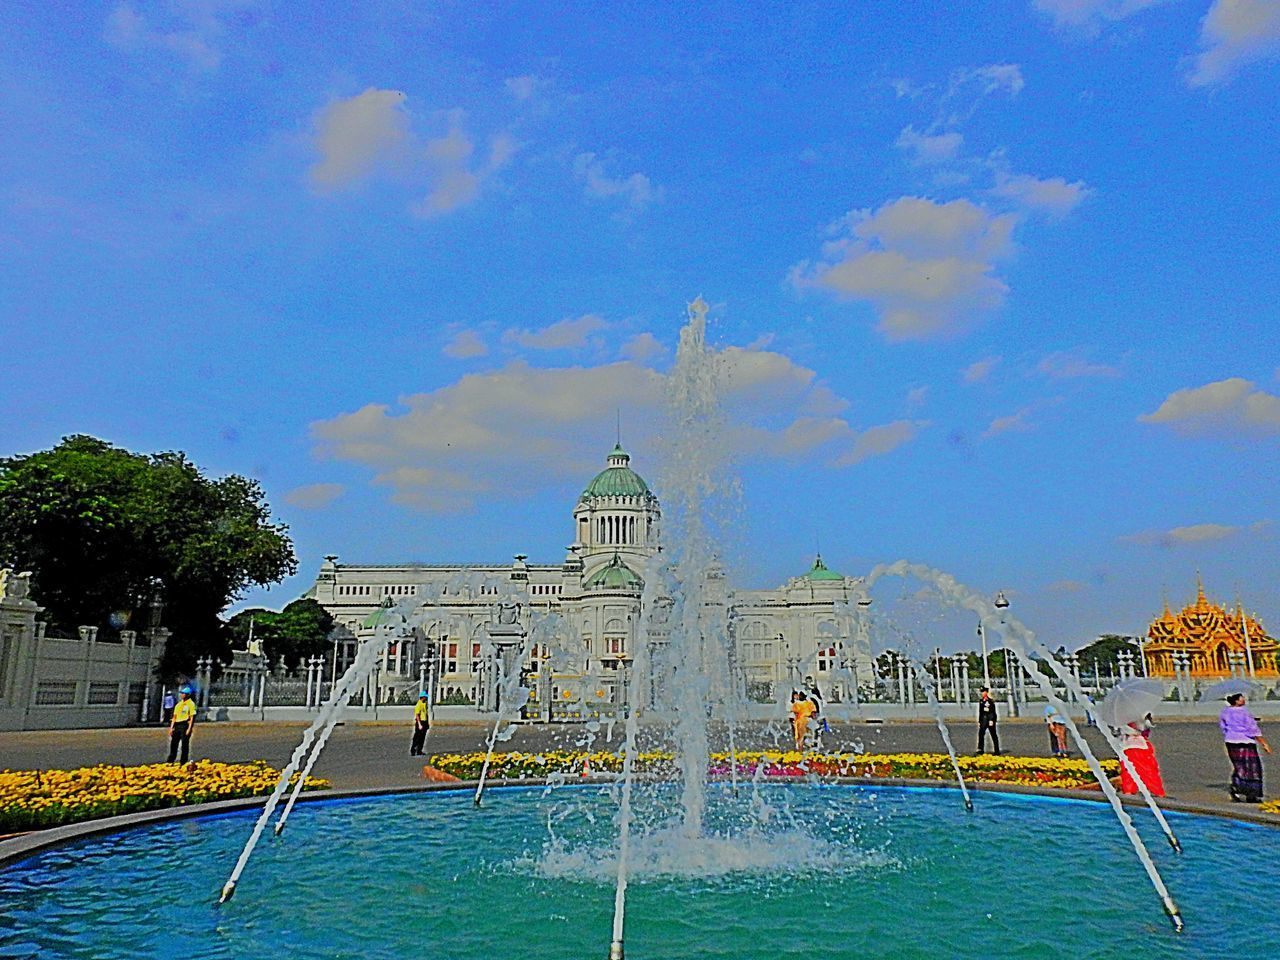 water, built structure, architecture, building exterior, sky, cloud - sky, travel destinations, nature, travel, religion, place of worship, day, tourism, building, dome, spirituality, belief, incidental people, waterfront, outdoors, swimming pool